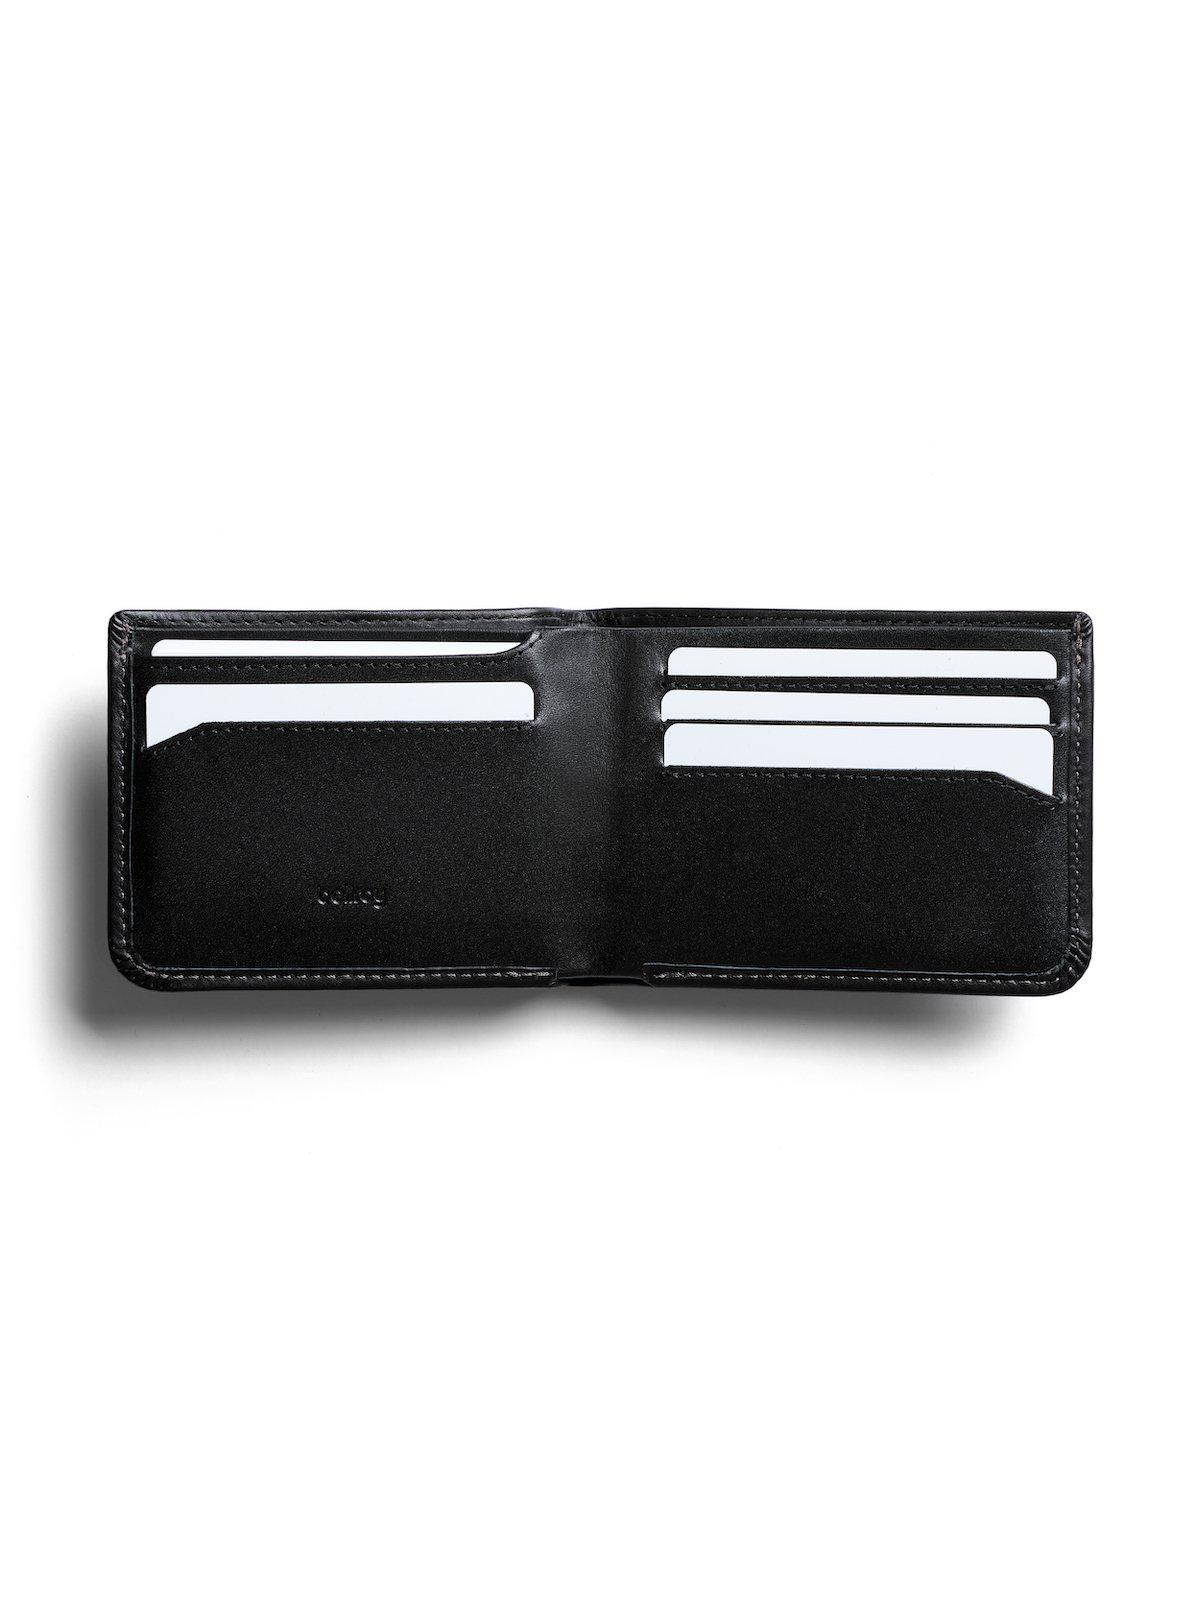 Bellroy Hide and Seek Wallet Black RFID - MORE by Morello Indonesia